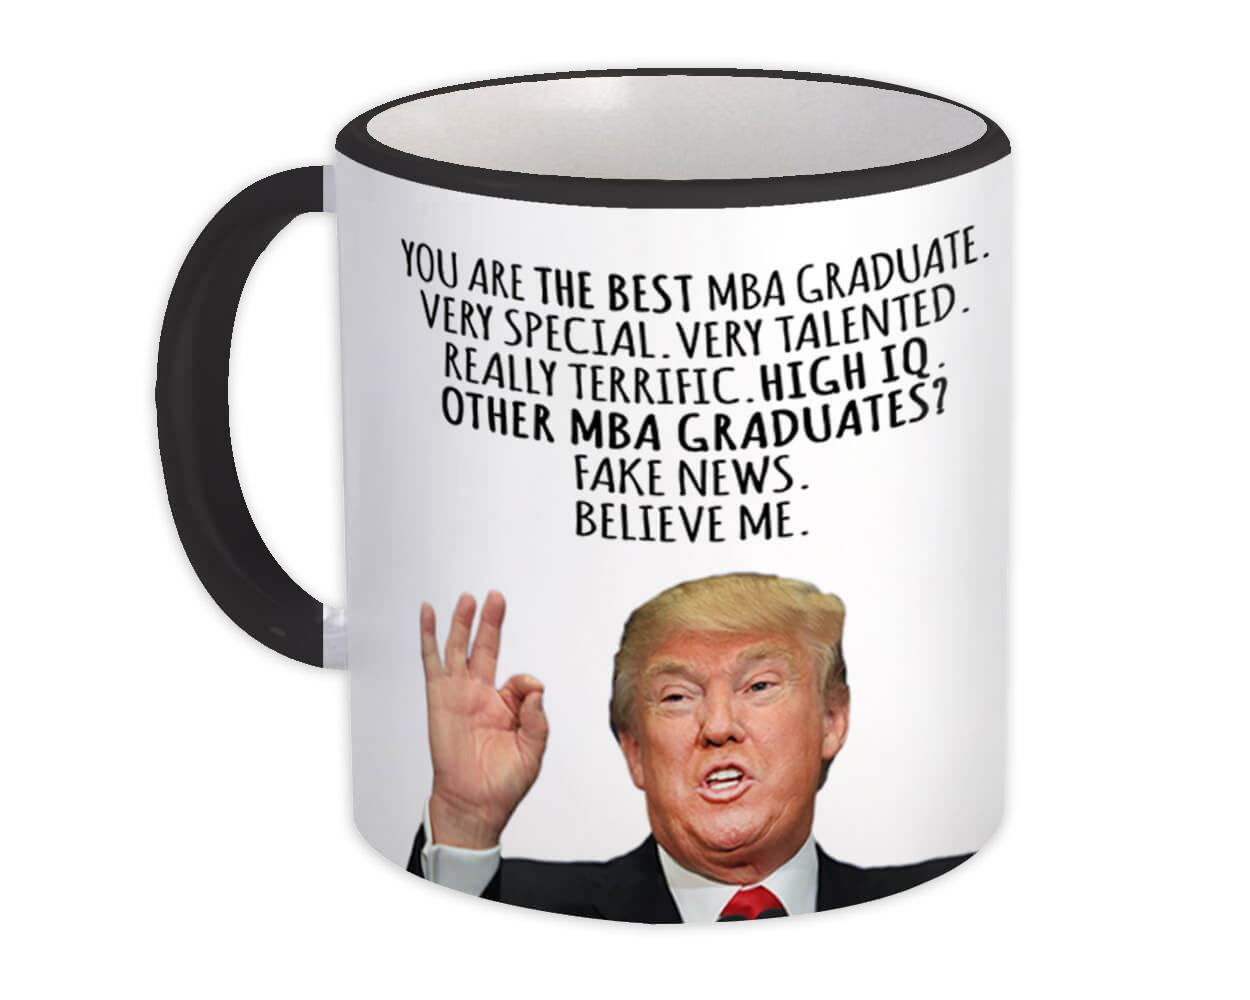 Gift for MBA Graduate : Gift Mug Donald Trump The Best MBA Graduate Funny Christmas